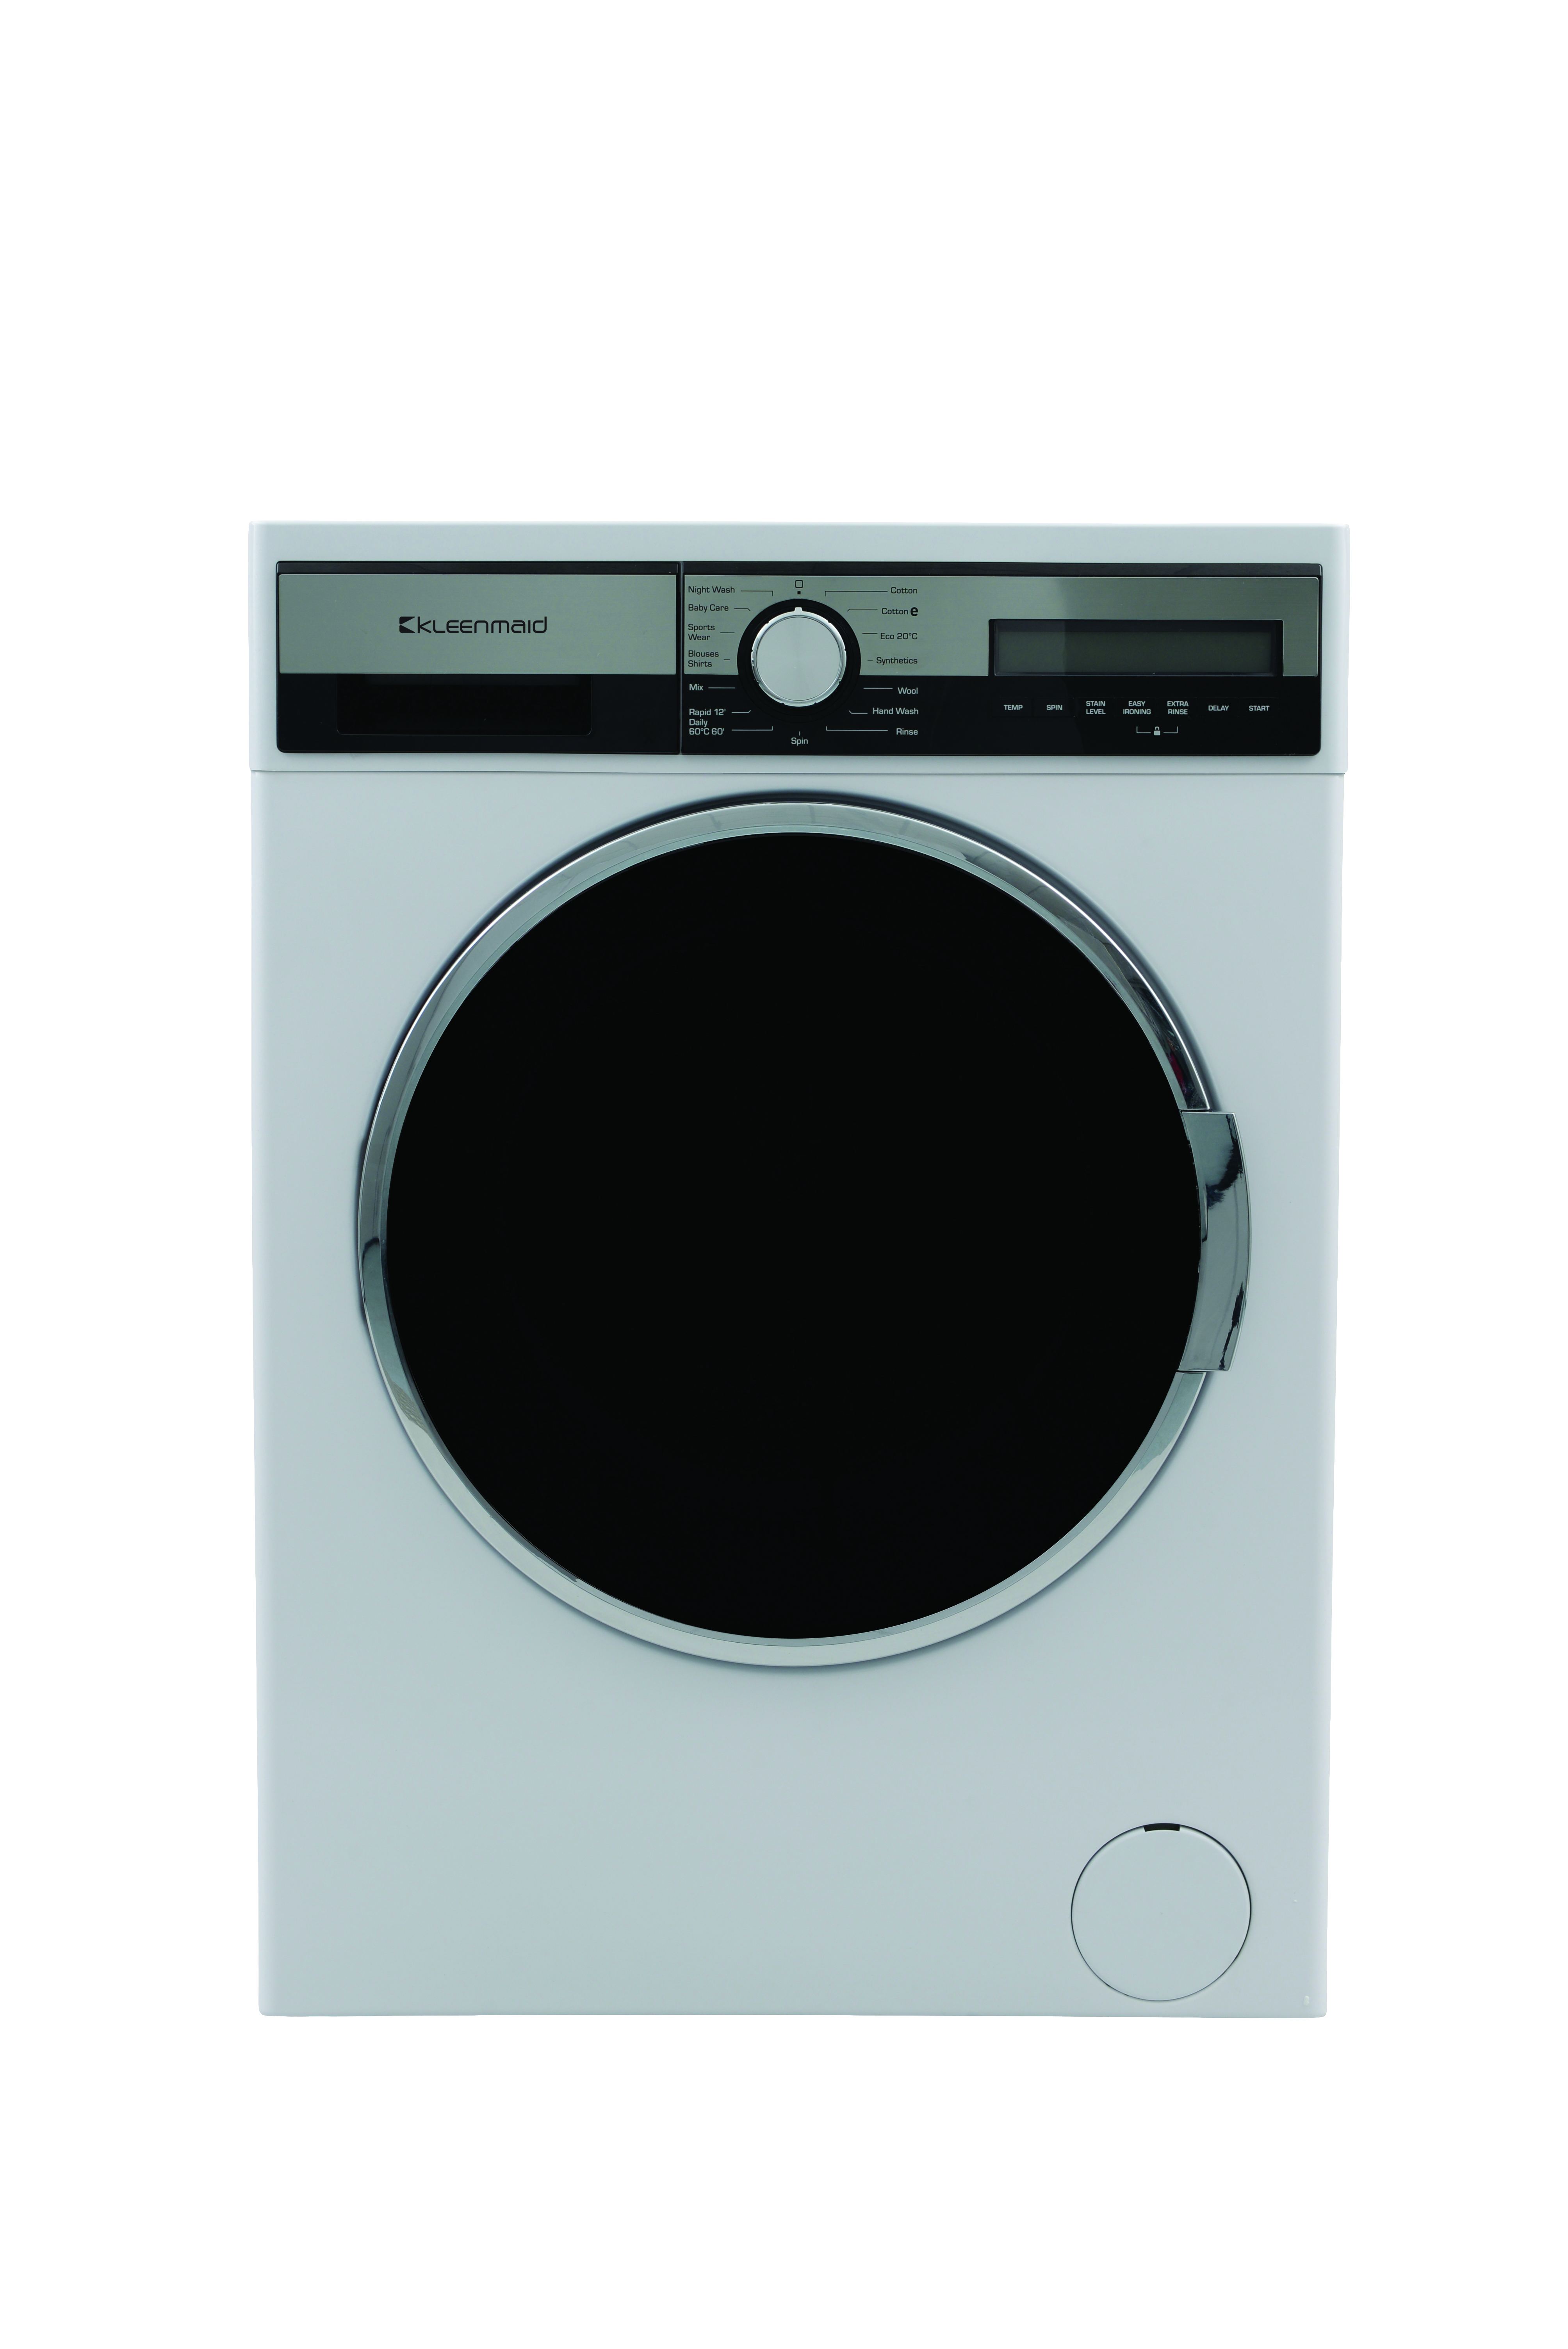 Microwave Oven Disposal Seattle Bestmicrowave